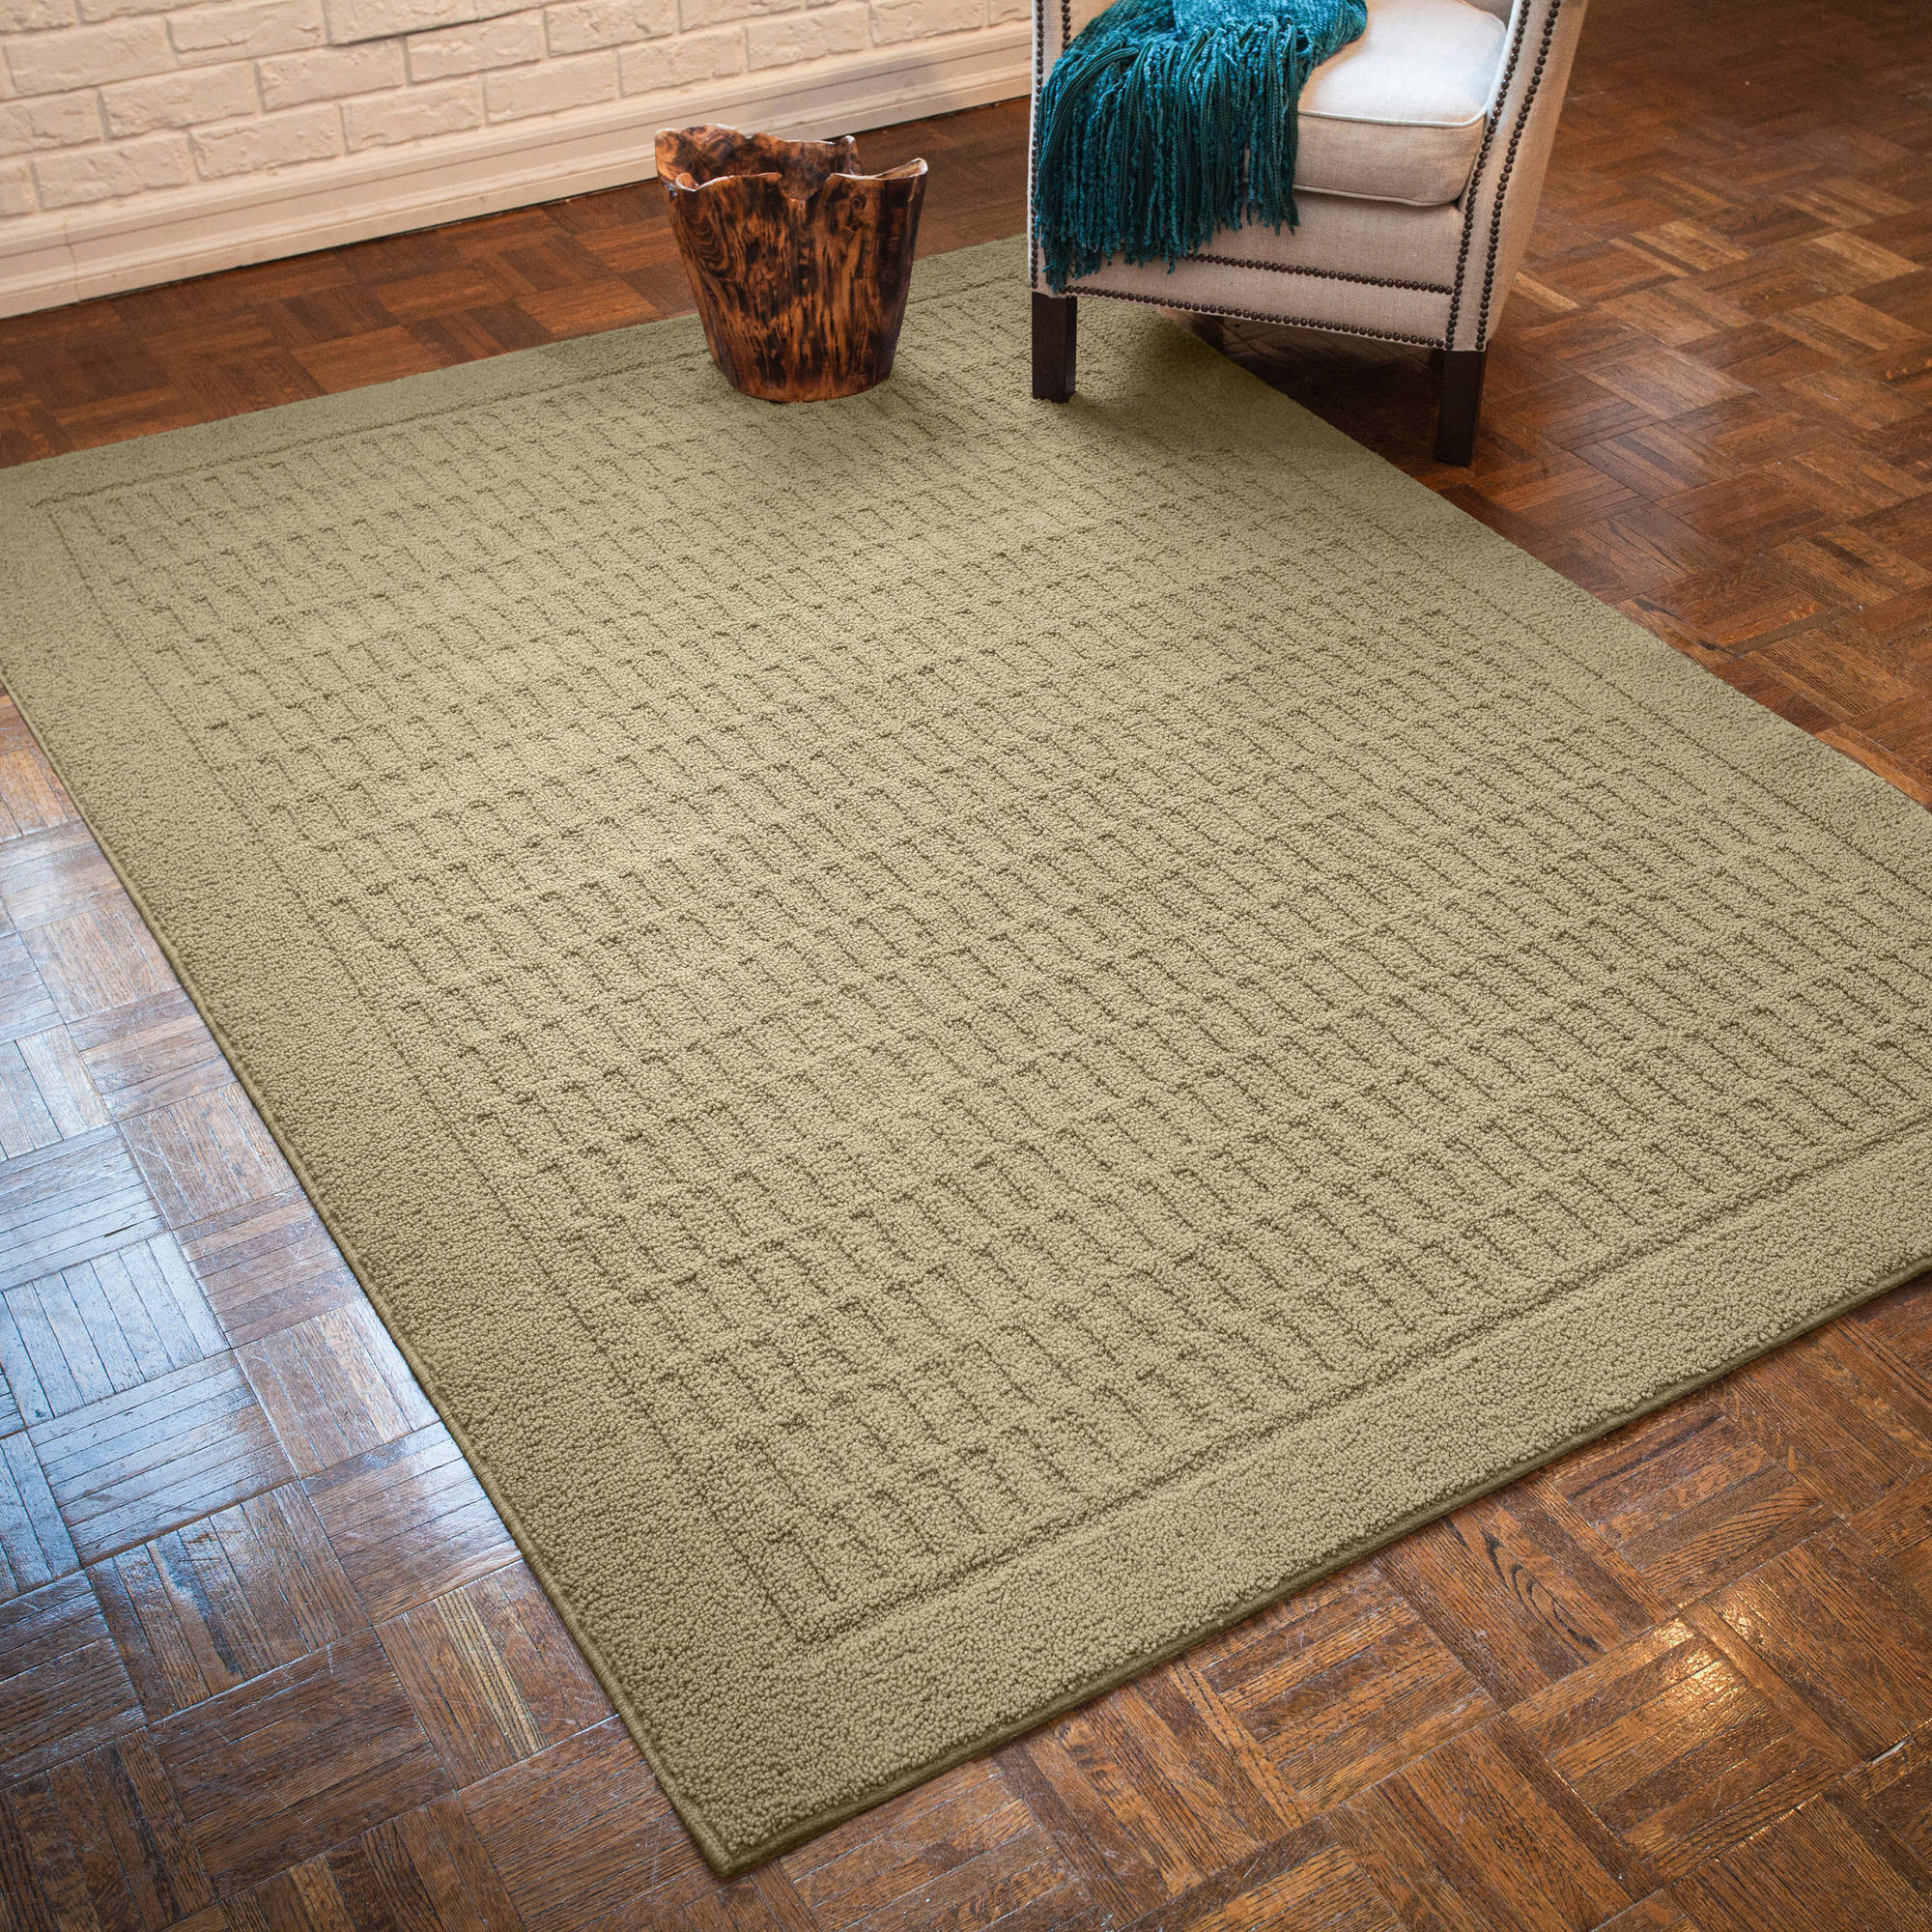 machine-washable area rugs